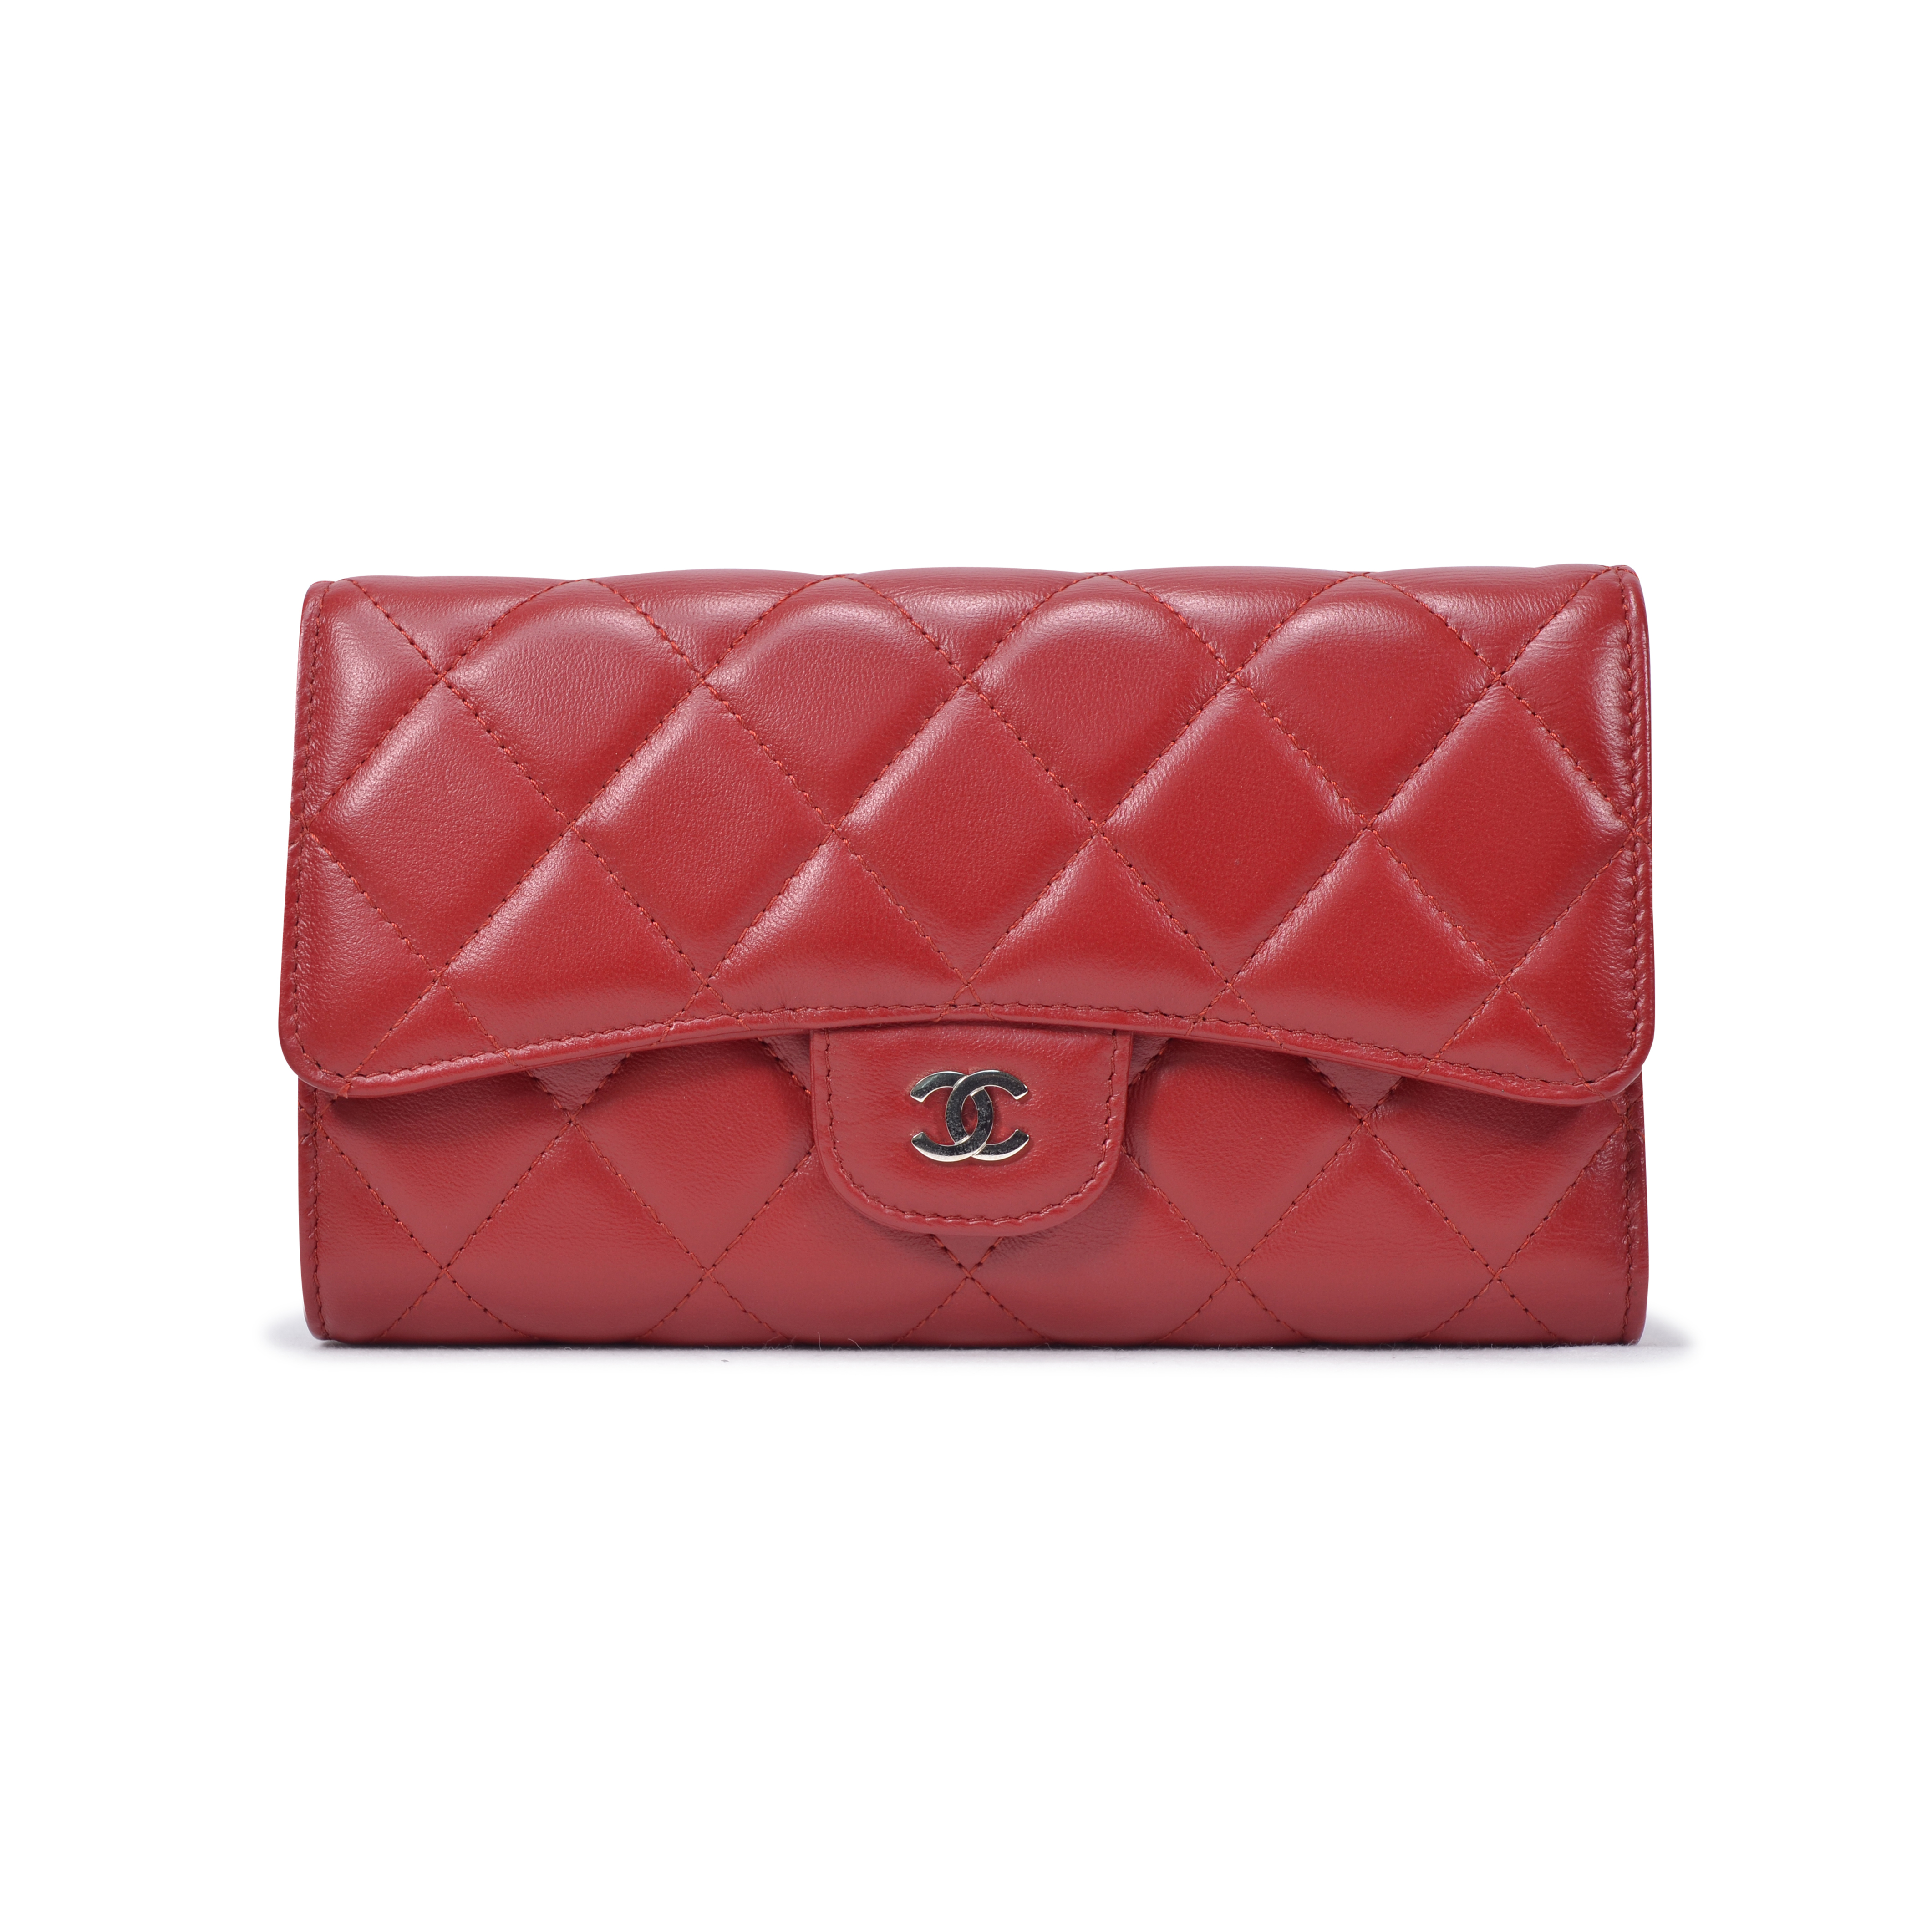 3042a603f3d5 Authentic Second Hand Chanel Quilted Classic Long Wallet (PSS-334-00011) |  THE FIFTH COLLECTION